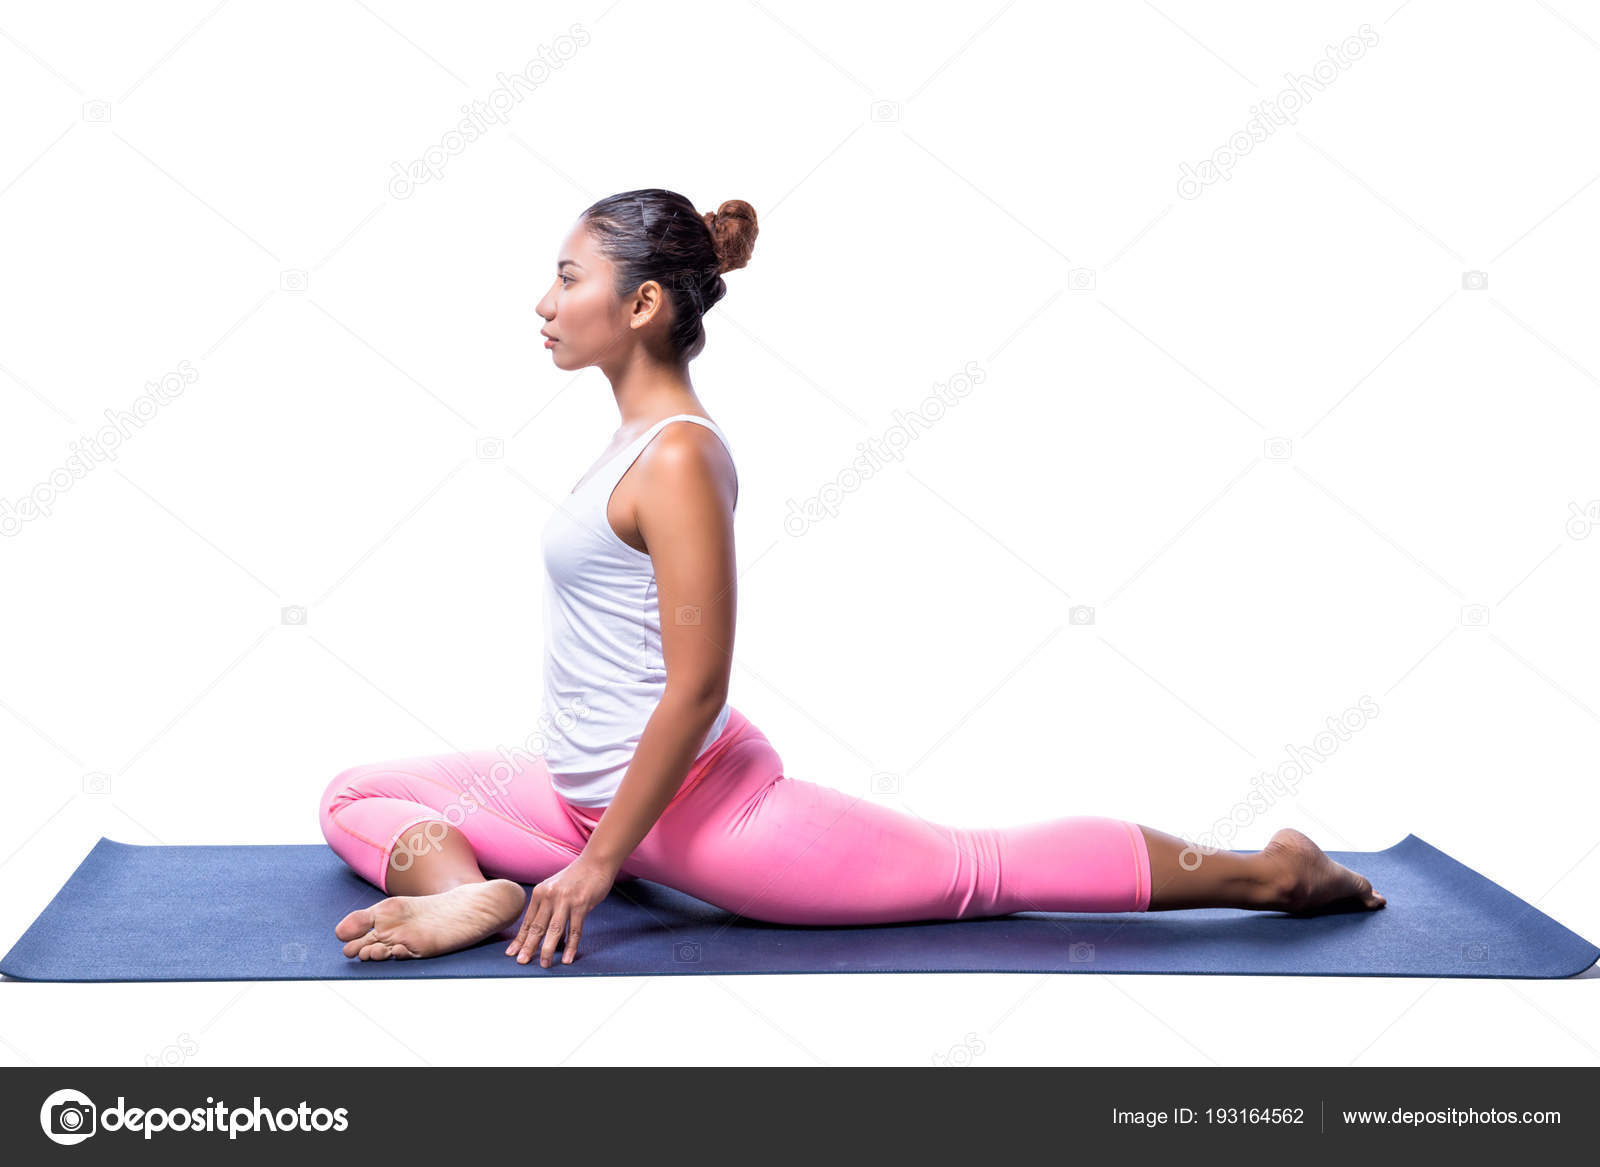 Young Indian Woman Yoga Pose White Clothes Isolated White Background Stock Photo C Southtownboy 193164562